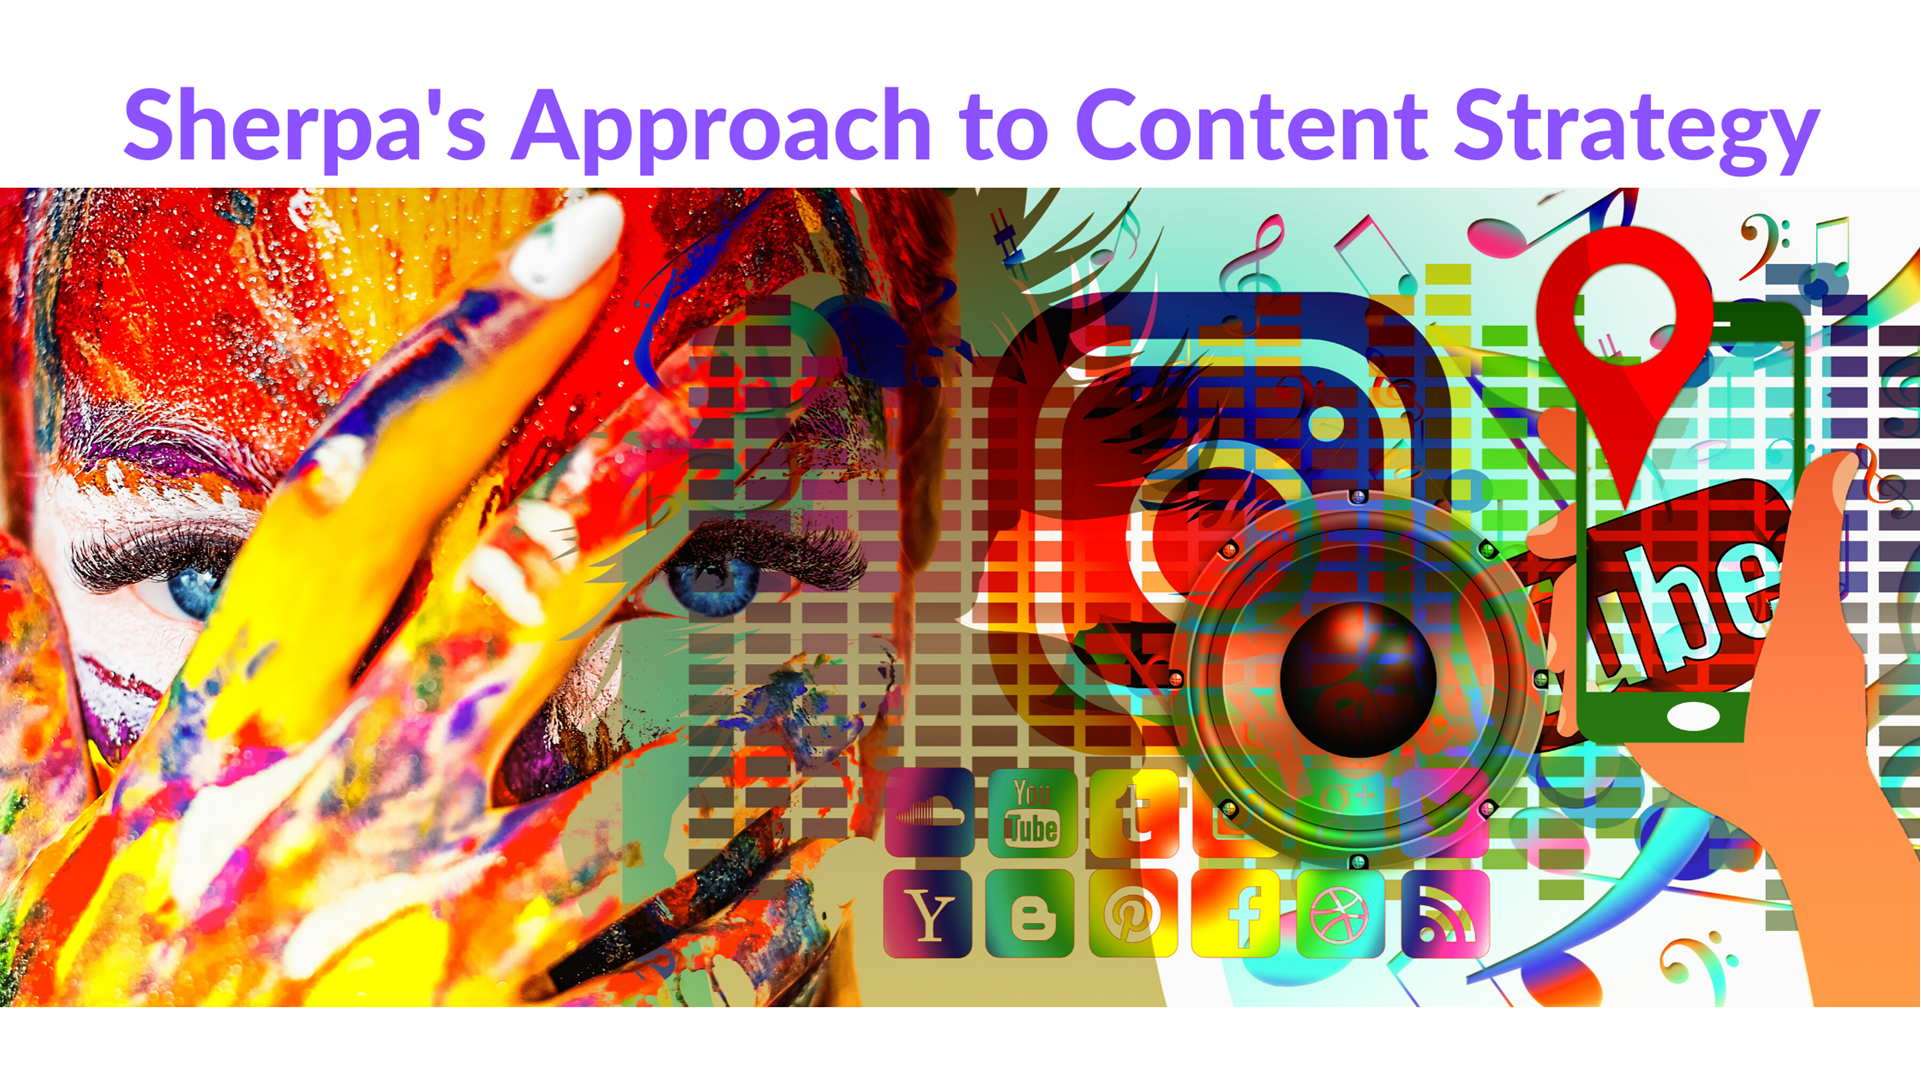 Edge Summer 2020: The Constant Quest for Content